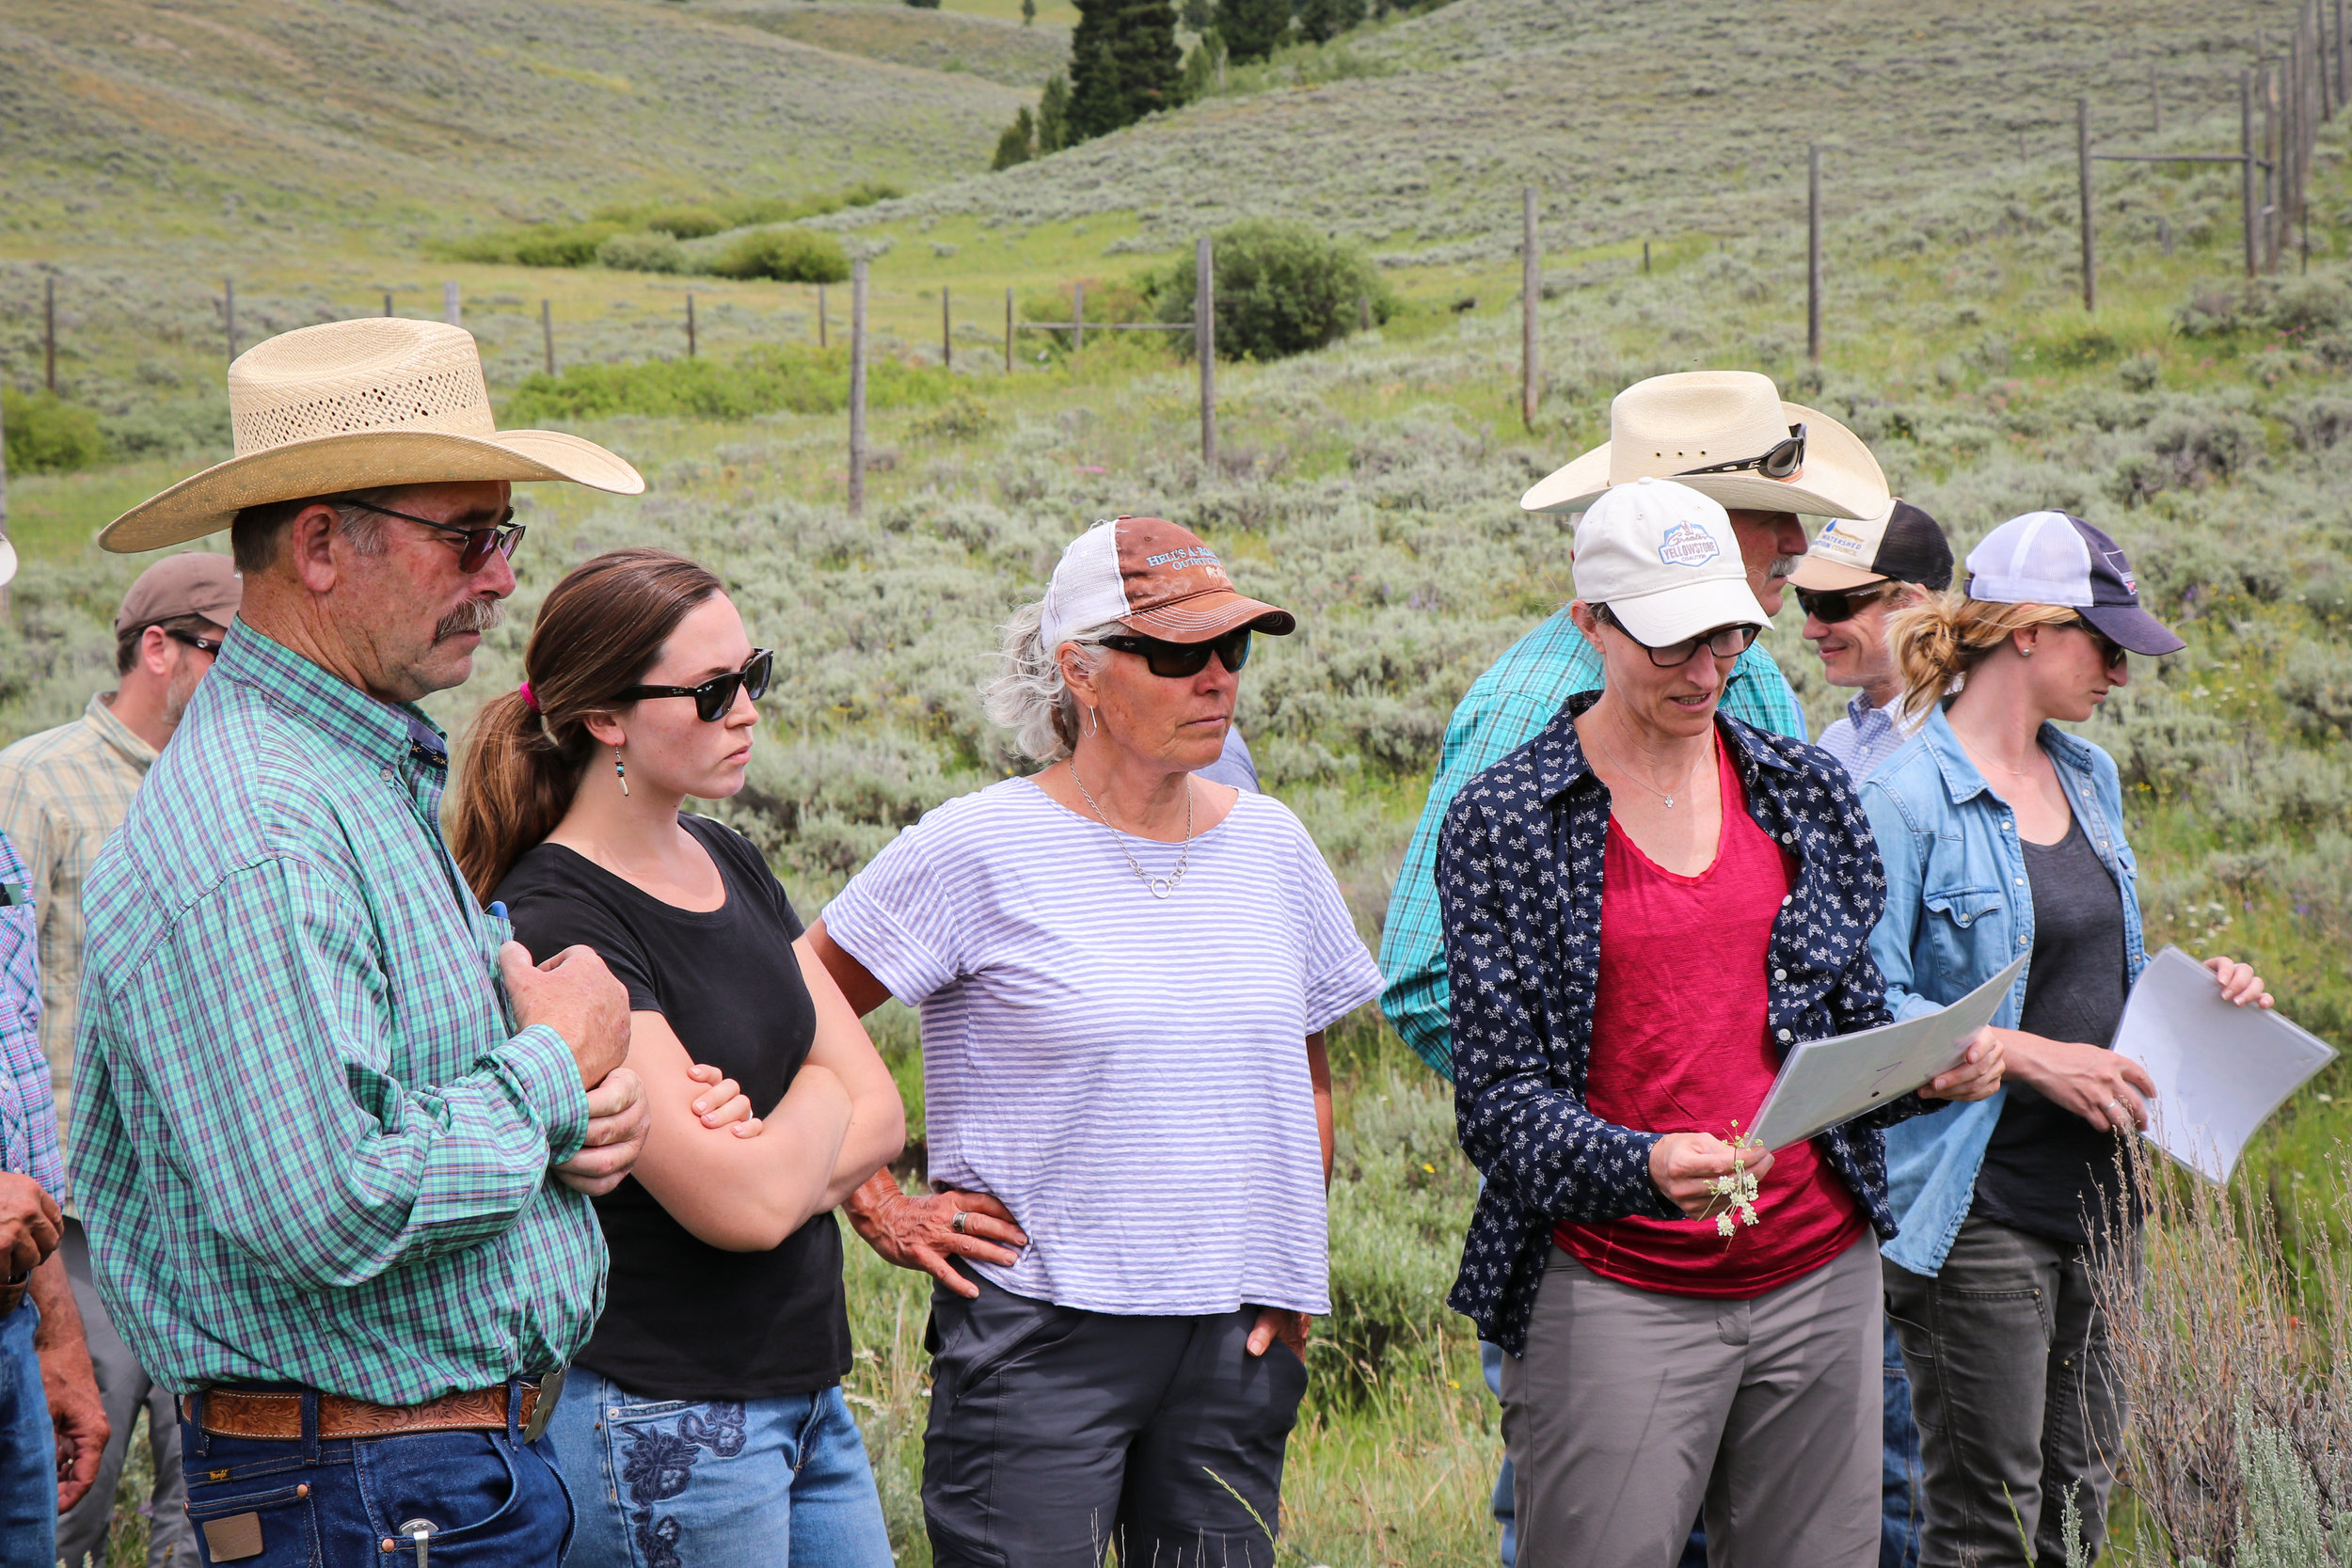 (L to R) Rancher Neil Barnosky, GYC's Wildlife Program Associate Brooke Shifrin, GYC's Executive Director Caroline Byrd, and GYC's Montana Conservation Coordinator Darcie Warden review data on the 2019 Ruby Valley Strategic Alliance field trip.  (Photo GYC/Emmy Reed.)